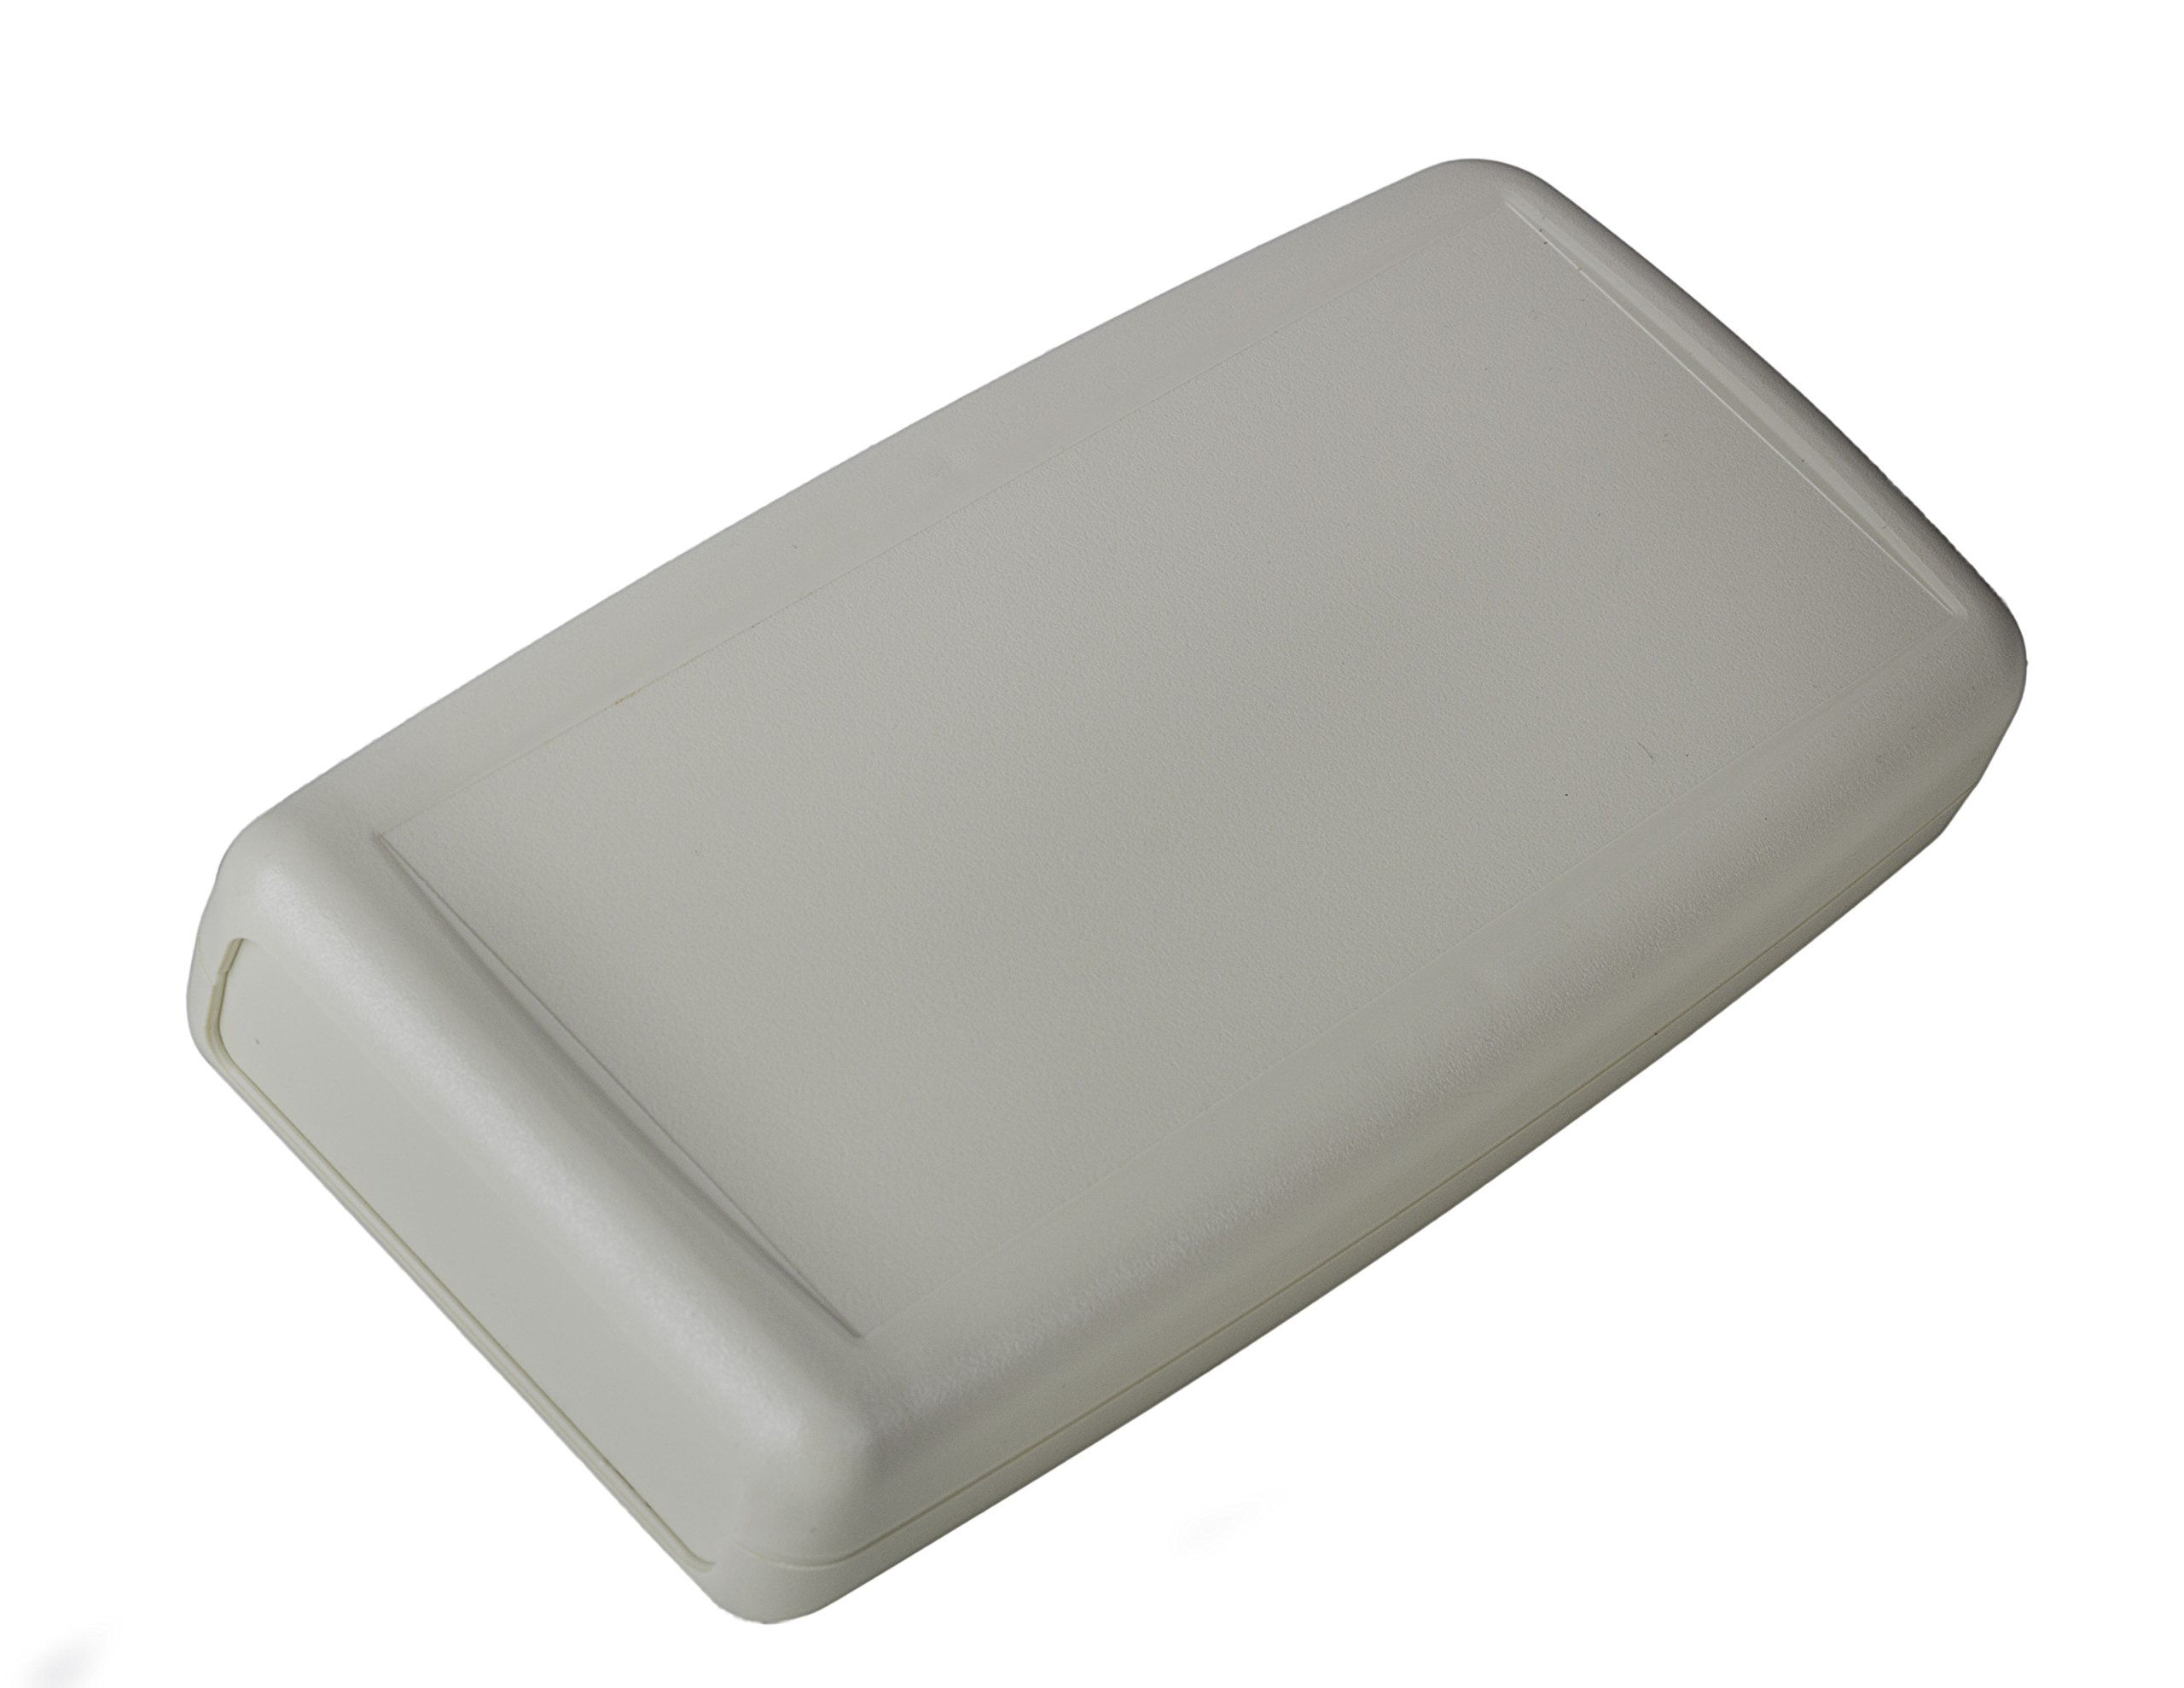 Serpac H75 ABS Plastic Enclosure, 7-13/64'' Length x 3-21/32'' Width x 1-13/64'' Height, Almond by Serpac